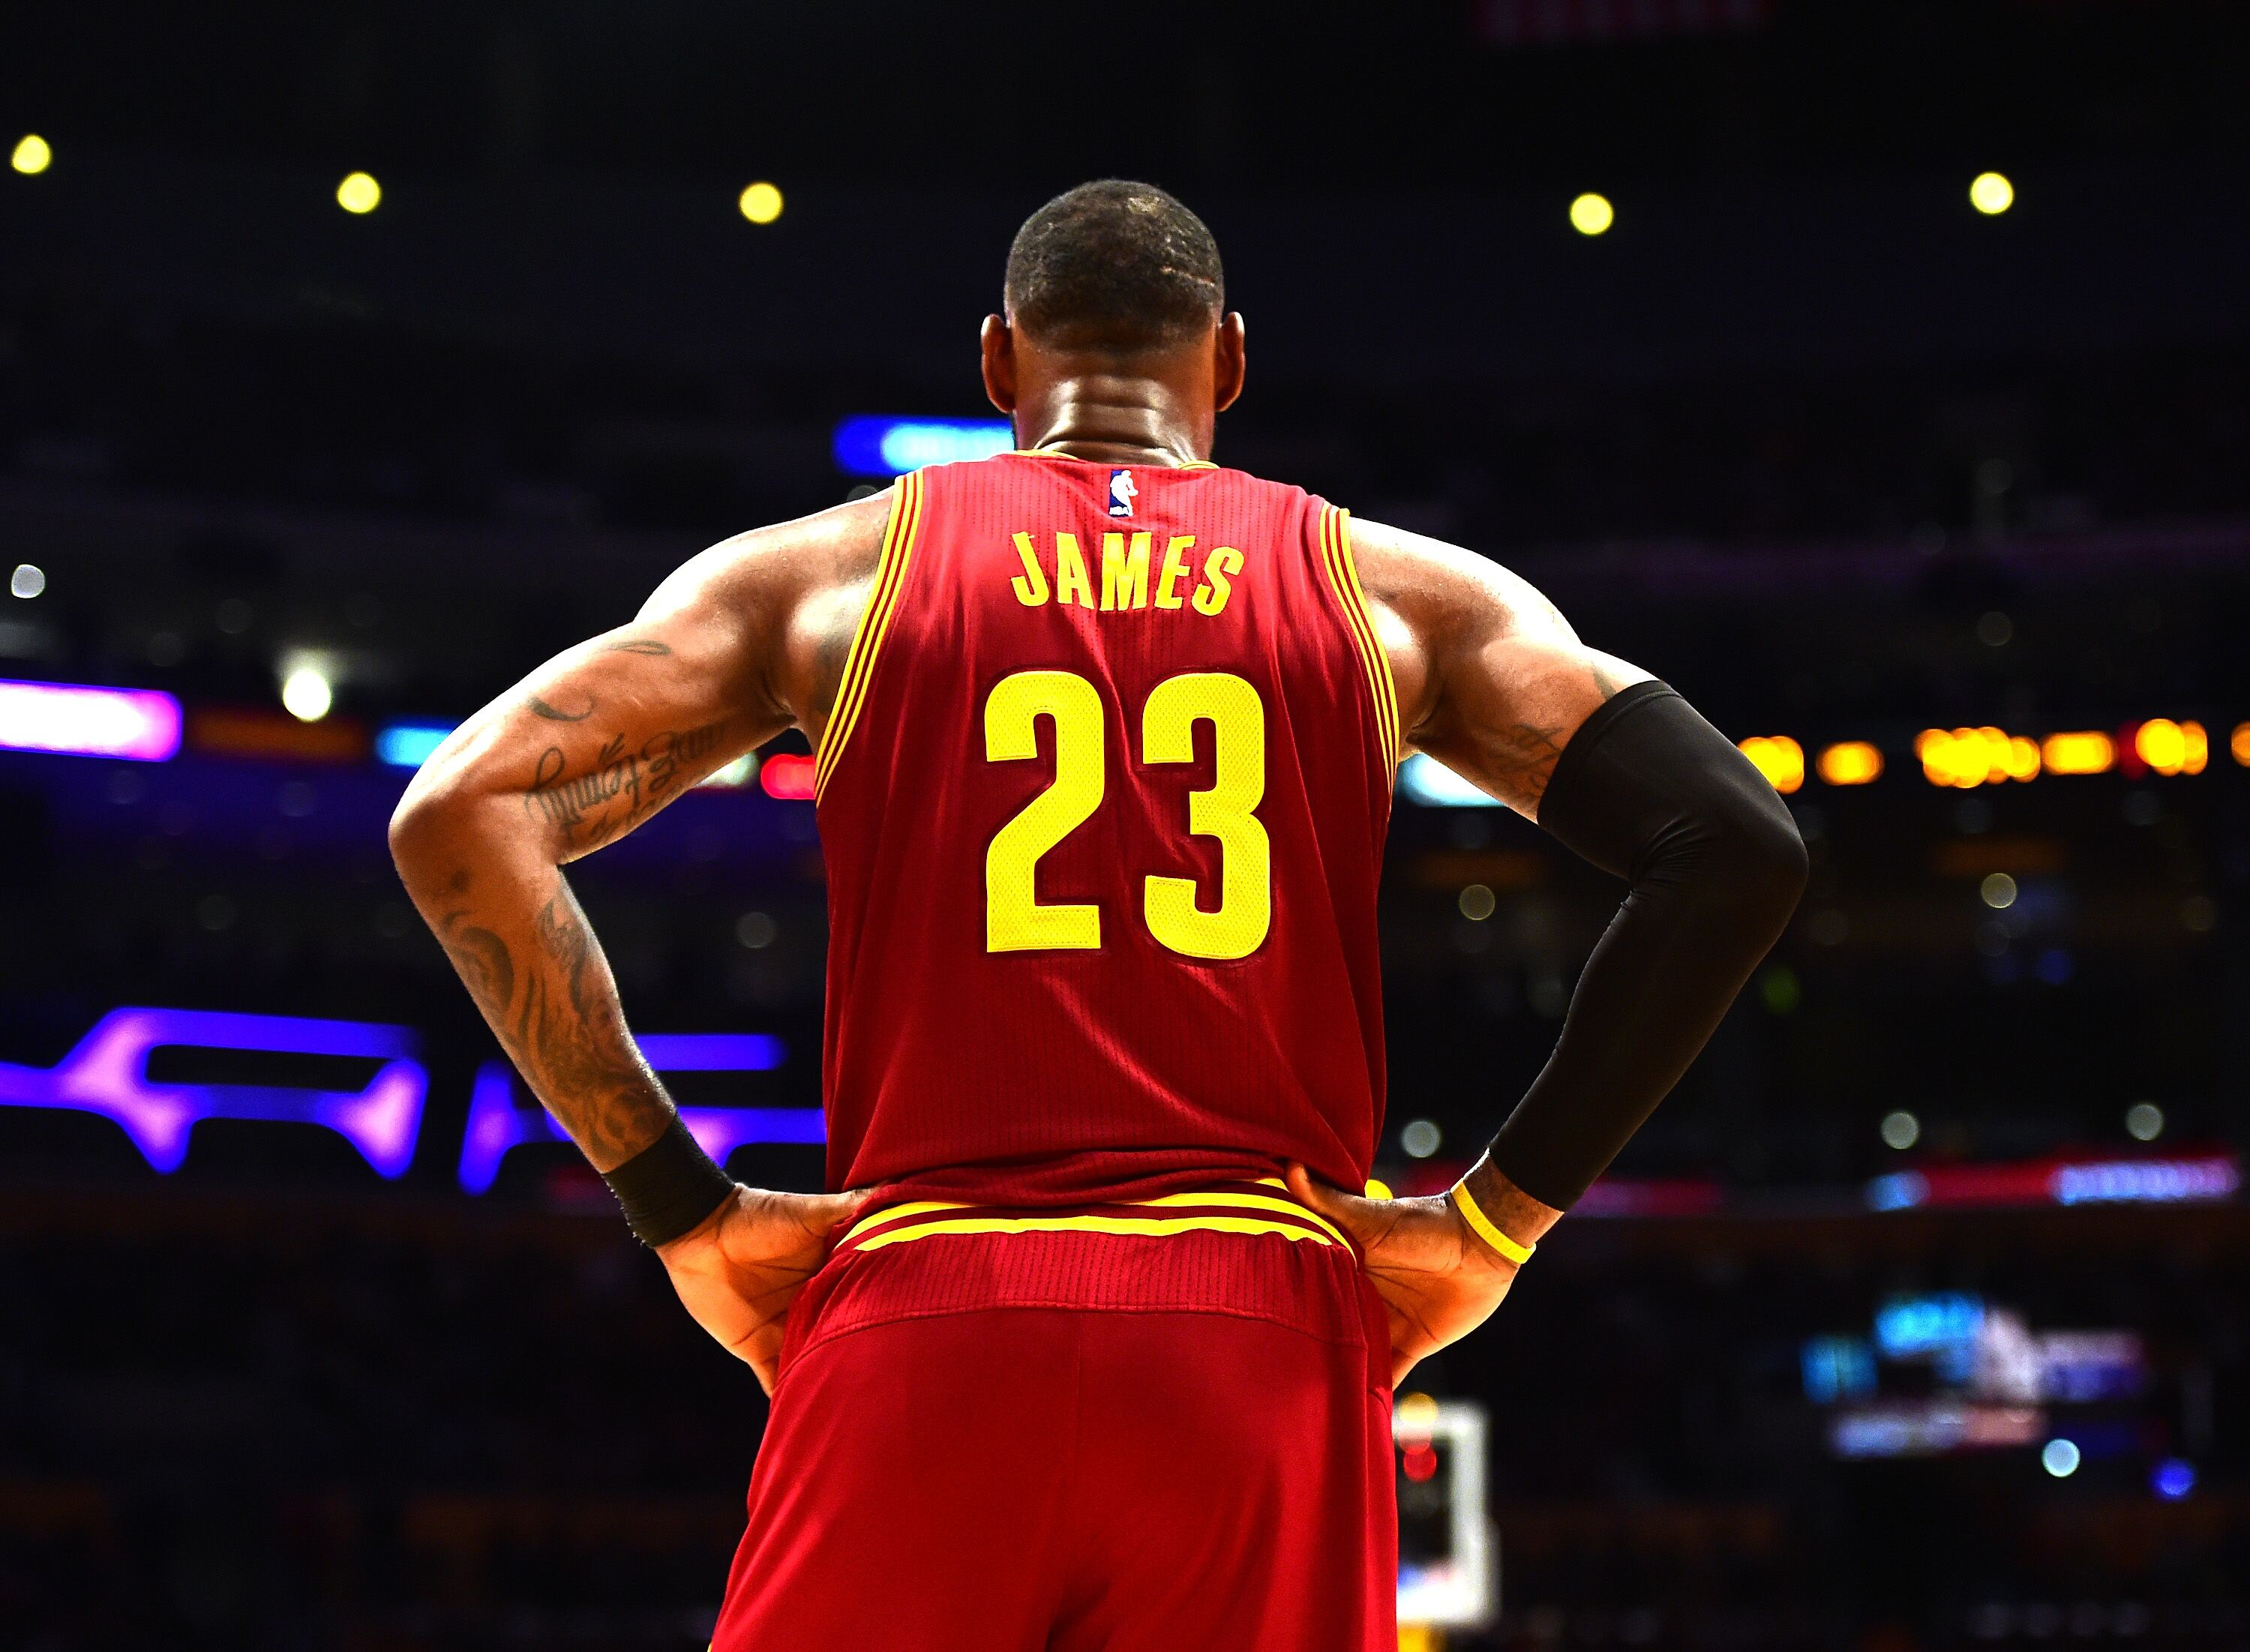 655405244-cleveland-cavaliers-v-los-angeles-lakers.jpg